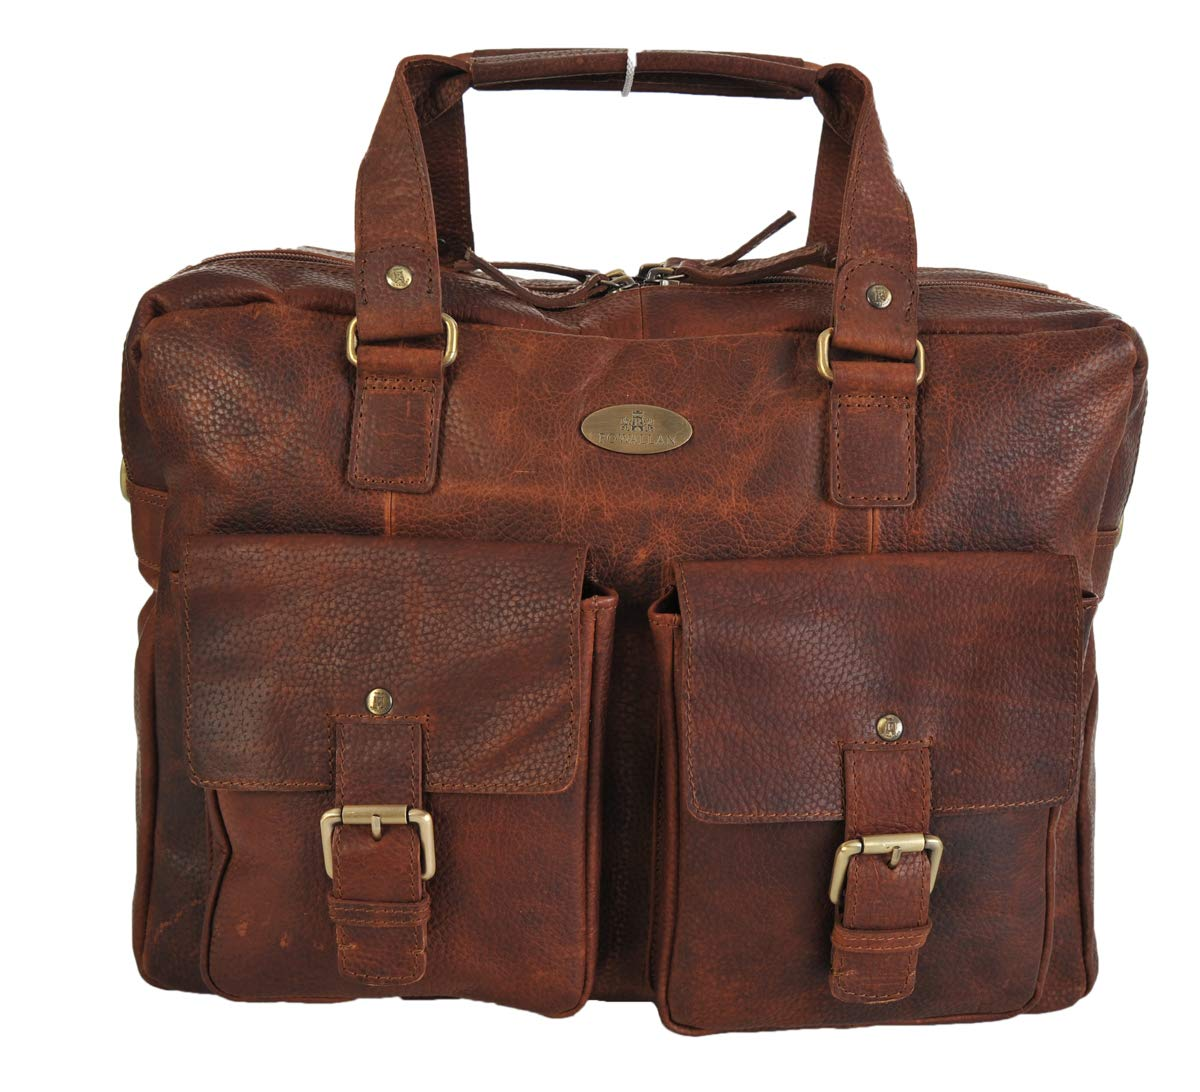 Rowallan Large leather Two Section Work Travel Overnight Bag 32-1209 RRP £149.99